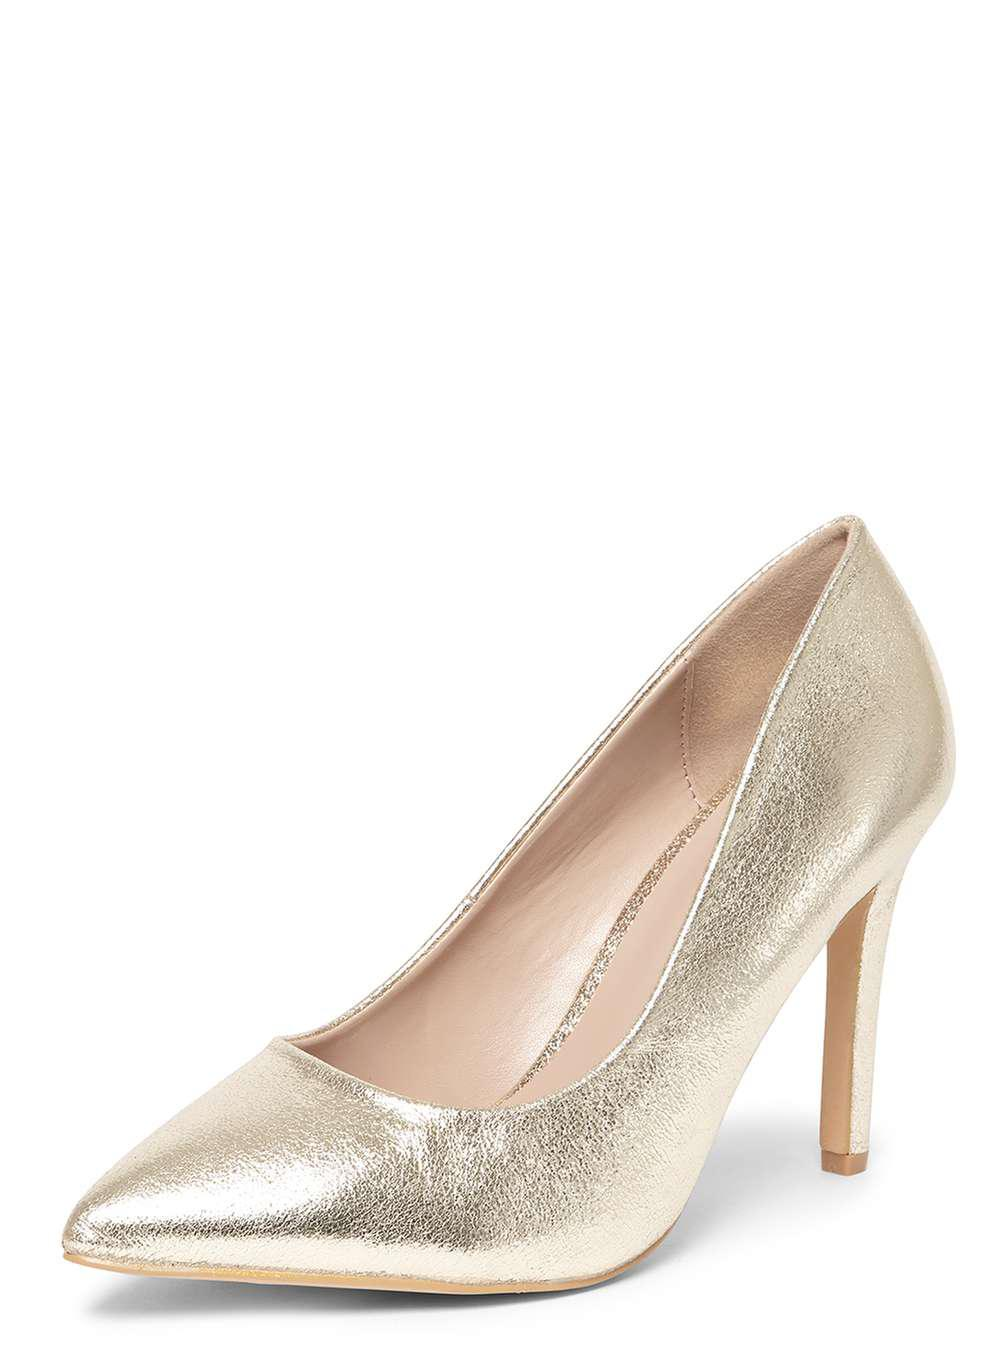 aacceb2f118 Lyst - Dorothy Perkins Wide Fit Gold  emily  Court Shoes in Metallic